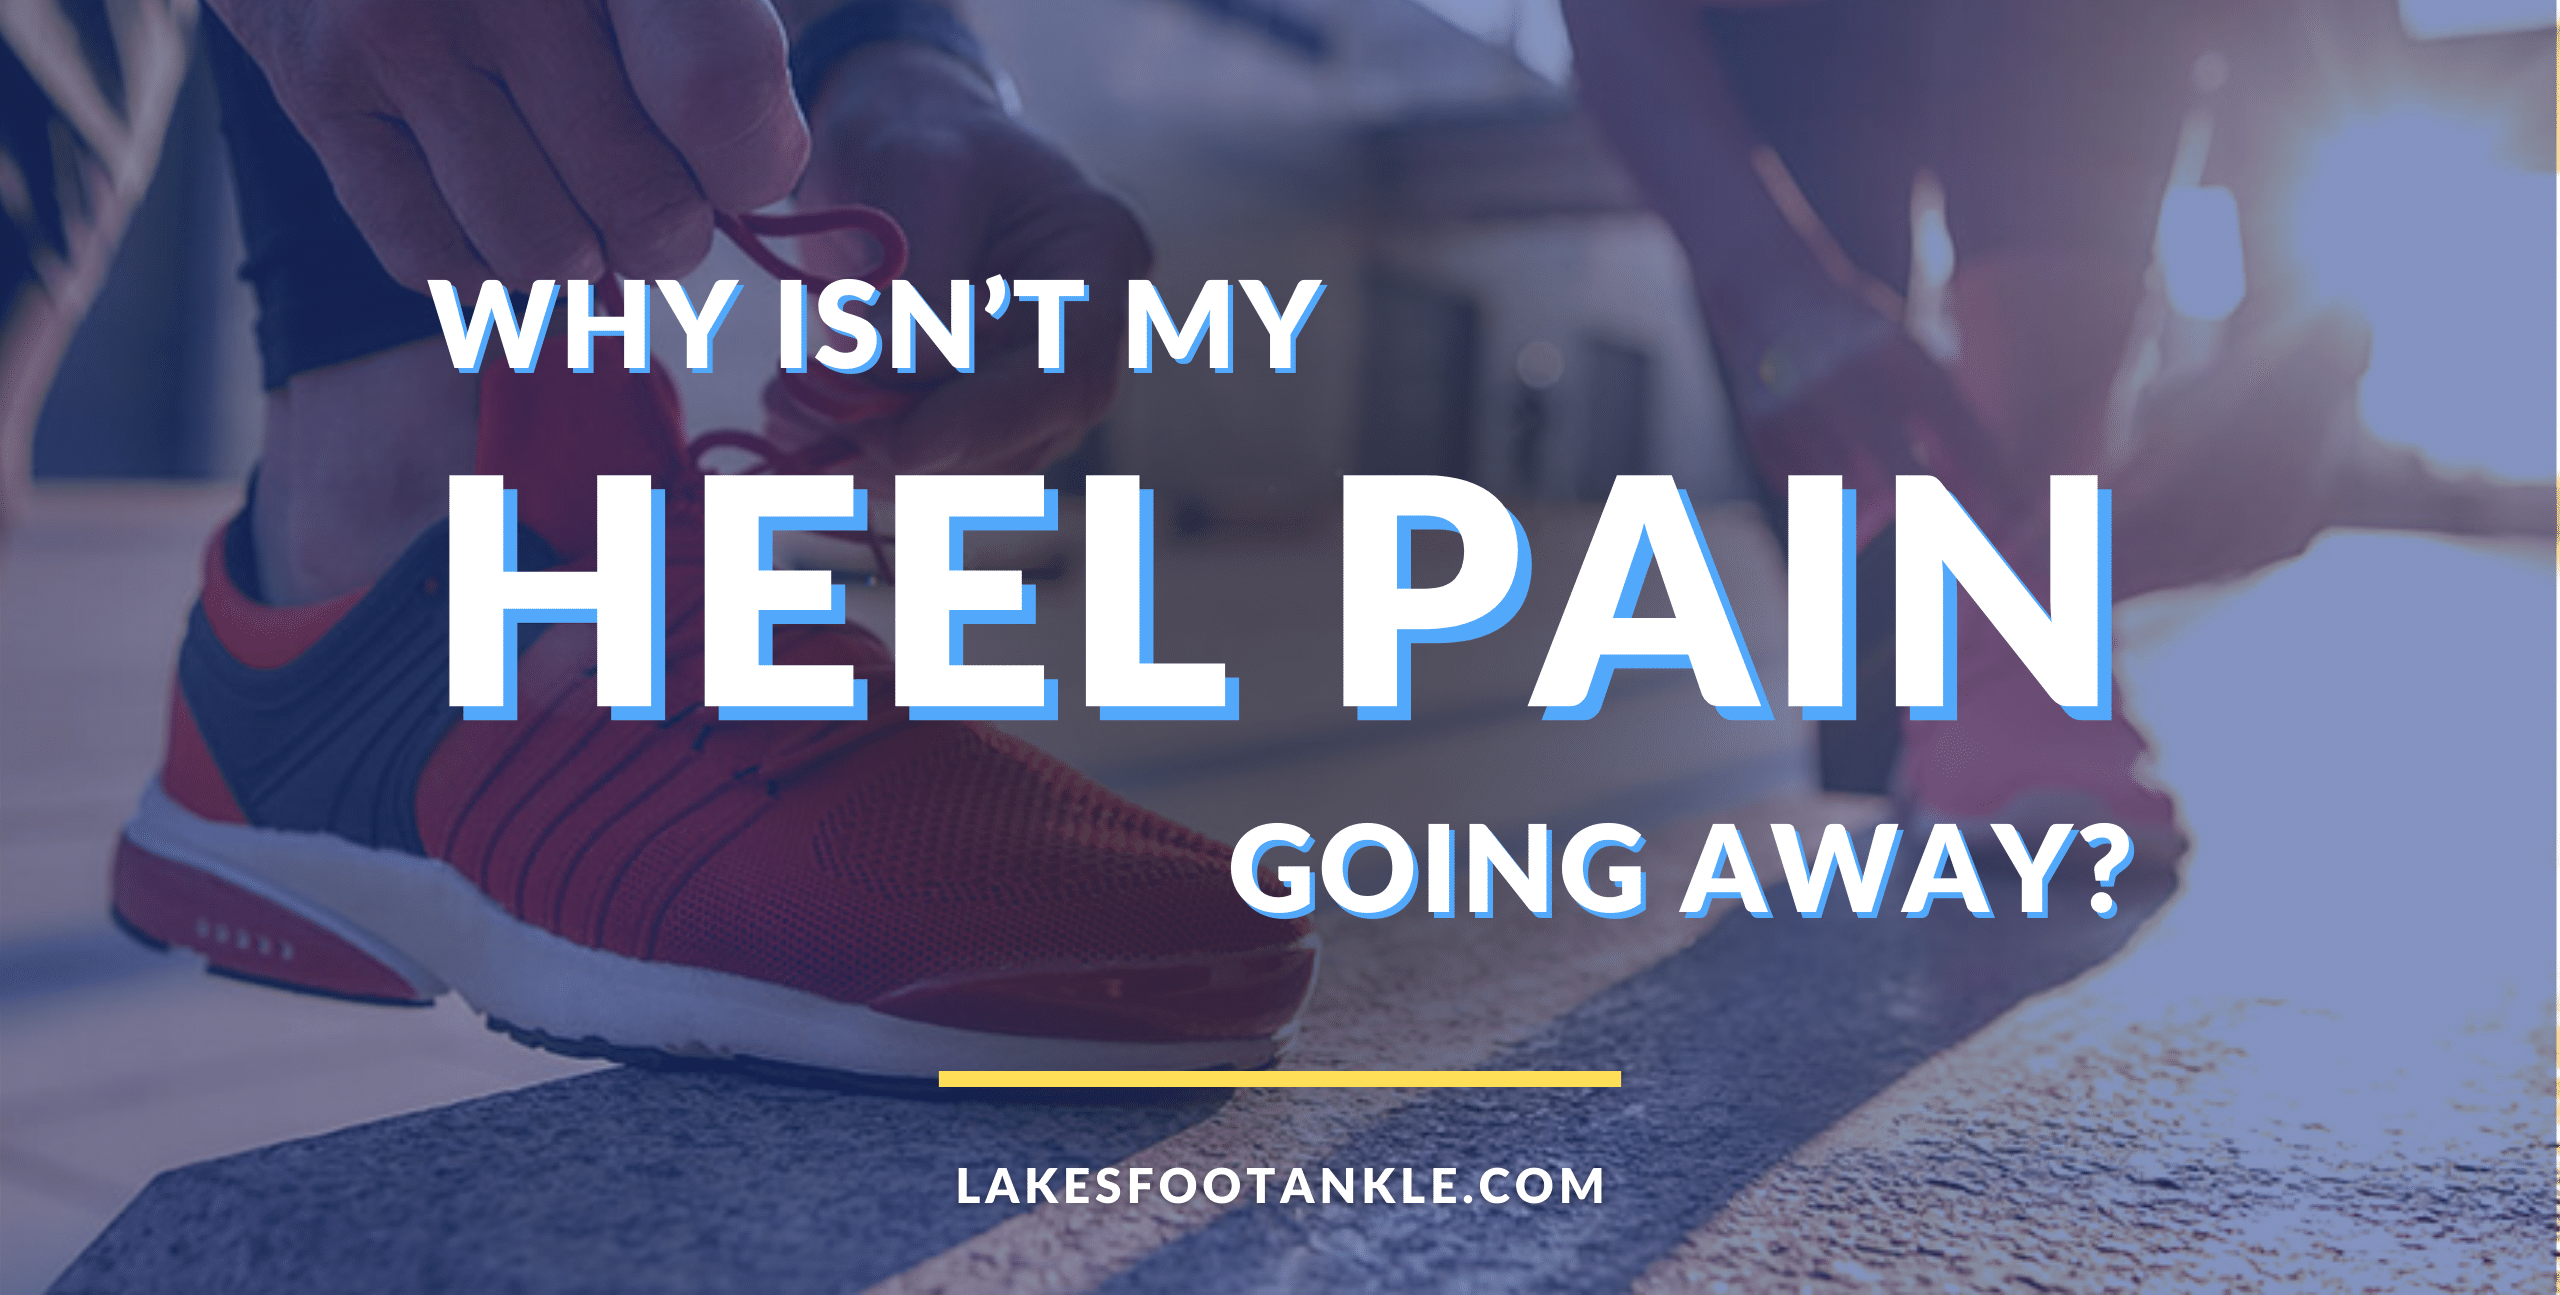 I've Tried EVERYTHING! Why Isn't My Heel Pain Going Away?